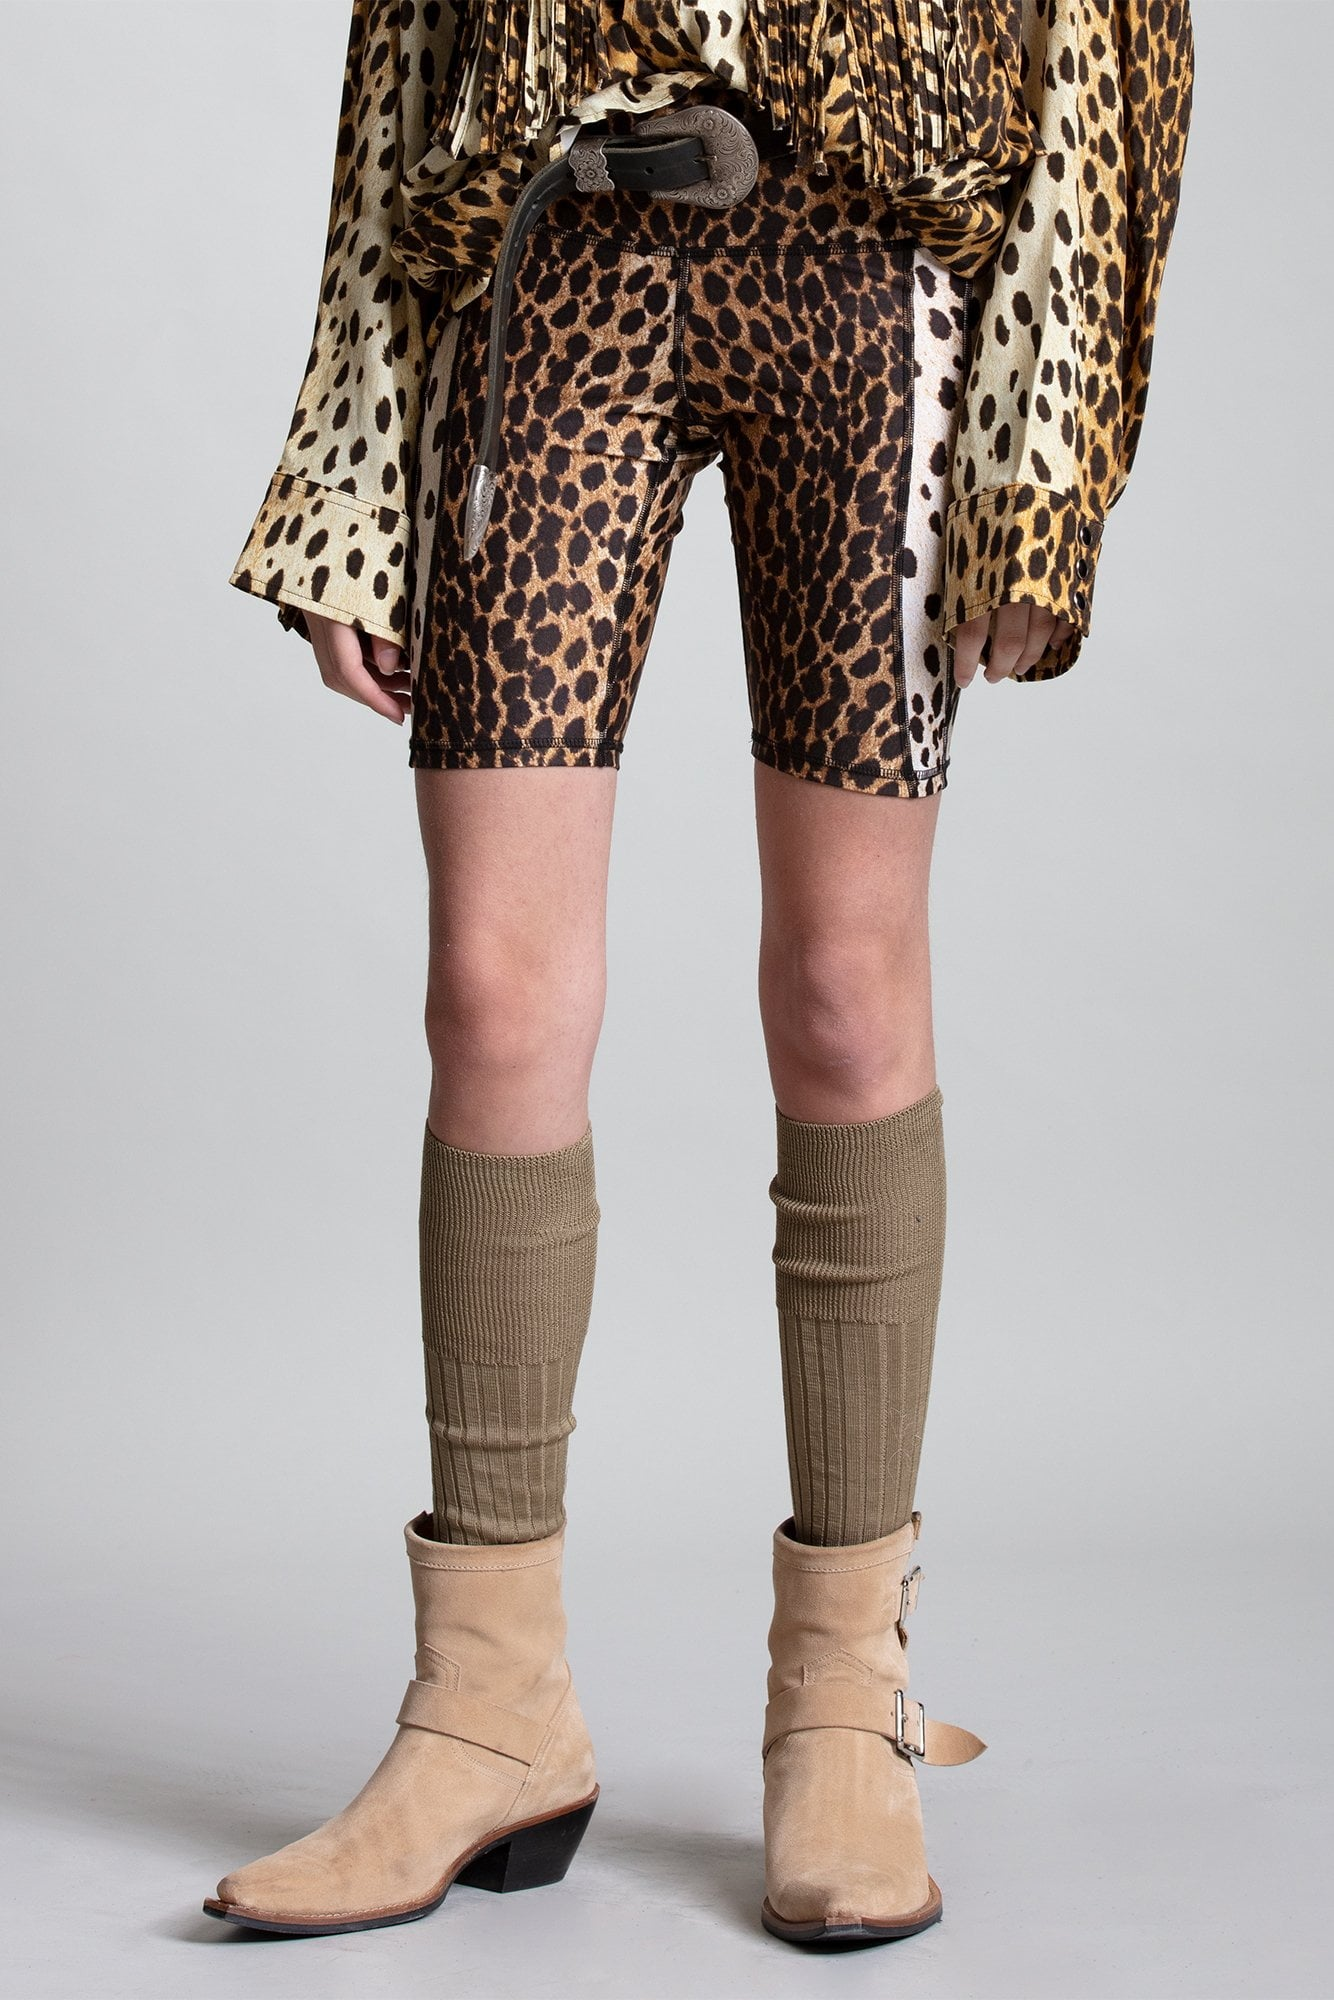 Engineered Biker Shorts - Cheetah